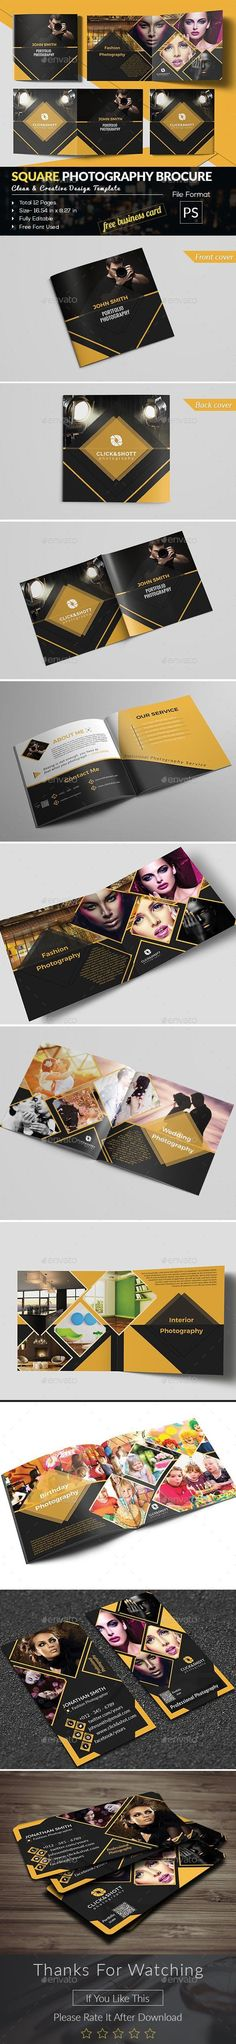 Buy Photography Portfolio Brochure With Business Card by Ancient_Ego on GraphicRiver. This is a Square Photography Brocure. This Card can be used f. Stationery Printing, Stationery Design, Brochure Design, Brochure Template, Photography Portfolio, Photography Brochure, Print Design, Graphic Design, Print Templates